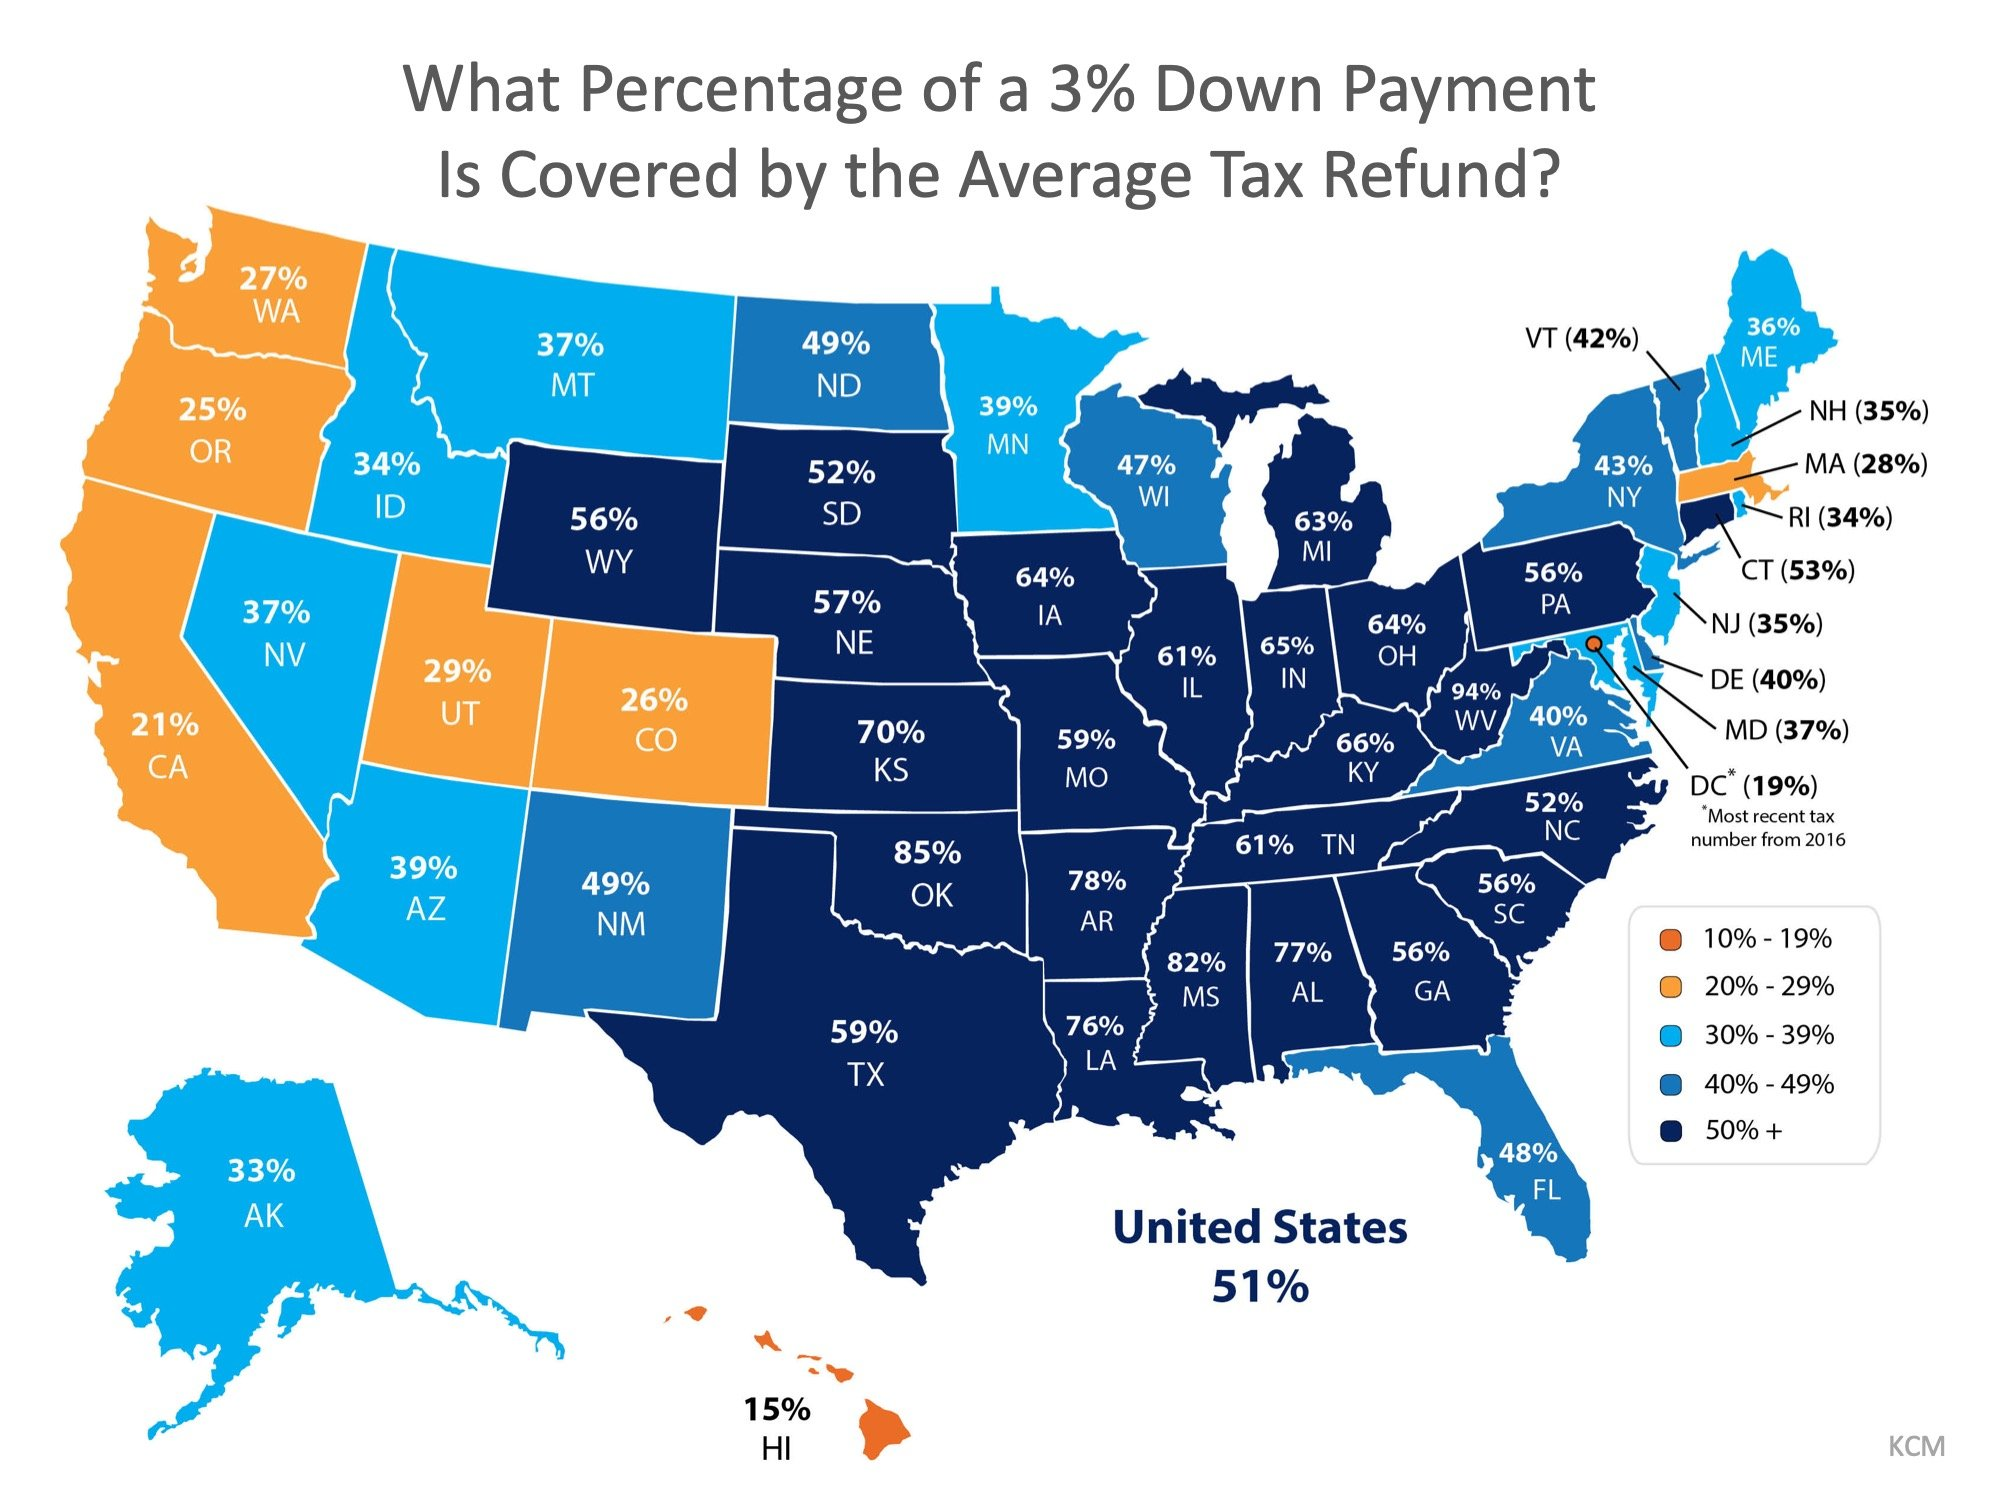 what Percentage of a 3% down payment is covered by the average tax refund